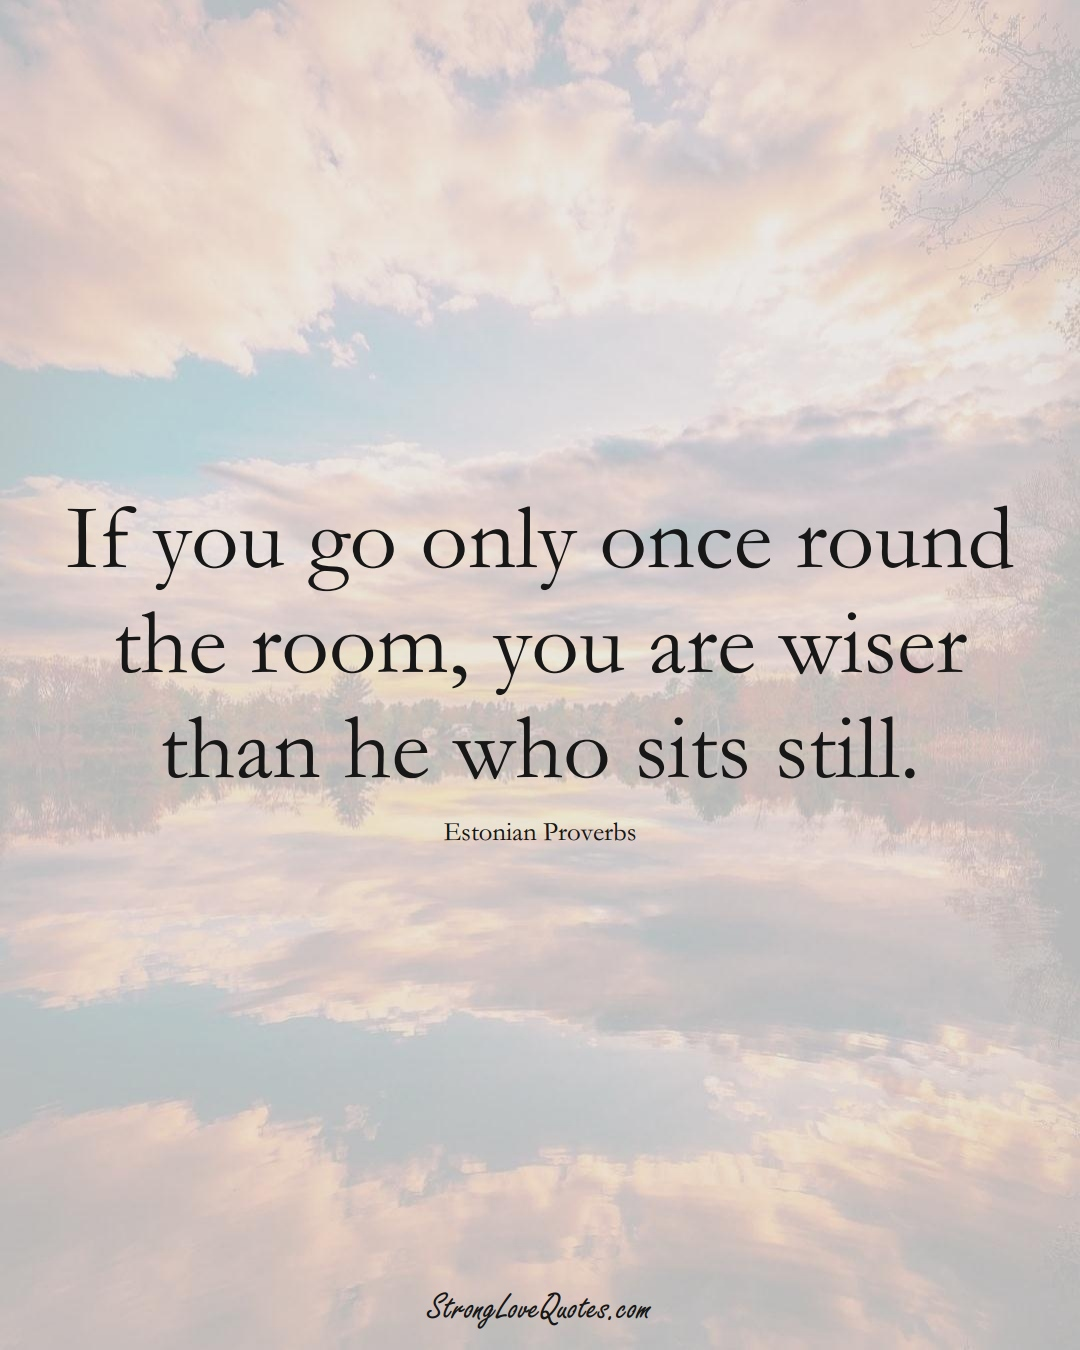 If you go only once round the room, you are wiser than he who sits still. (Estonian Sayings);  #EuropeanSayings